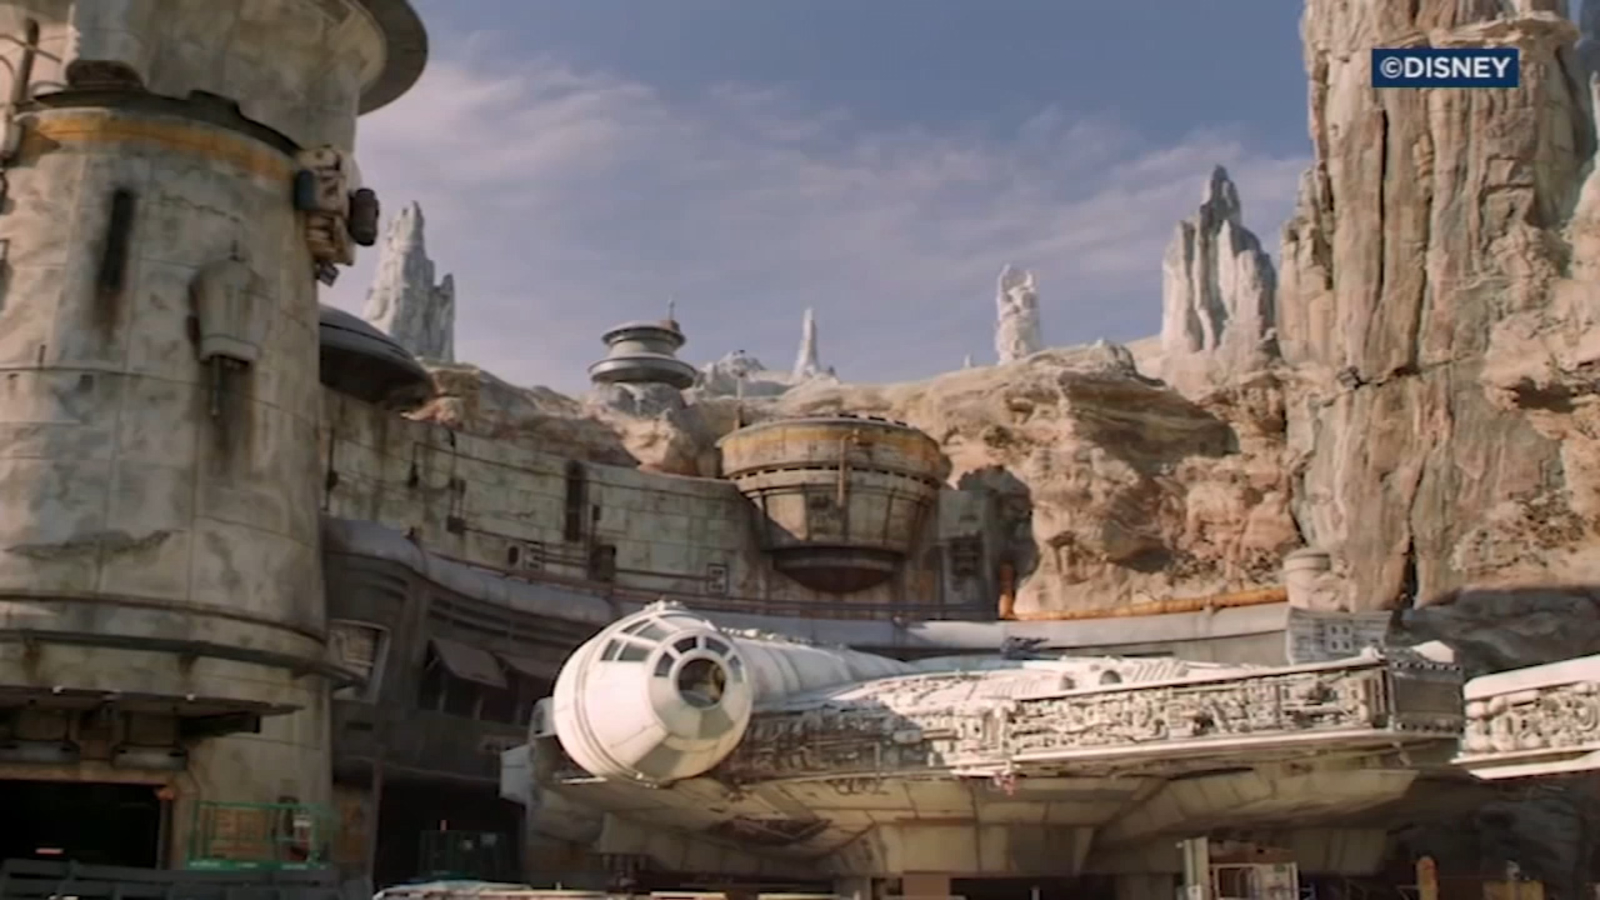 Star Wars Land At Disneyland Reservations And How To Get Them Abc7 New York